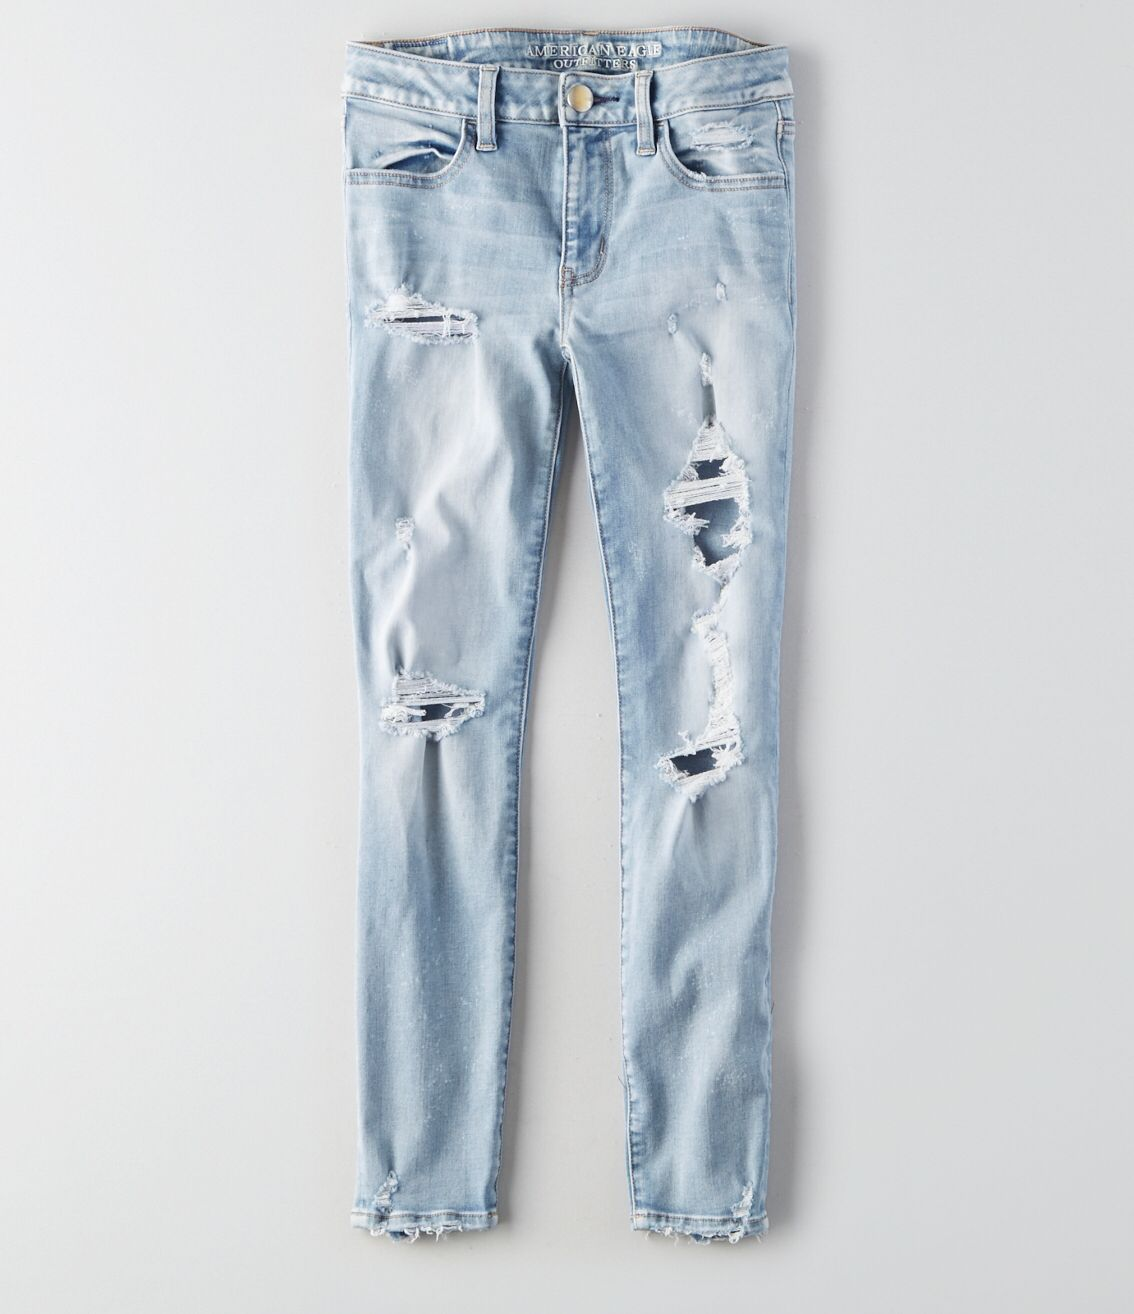 I'm sharing the love with you! Check out the cool stuff I just found at AEO: http://on.ae.com/2c2p08Q